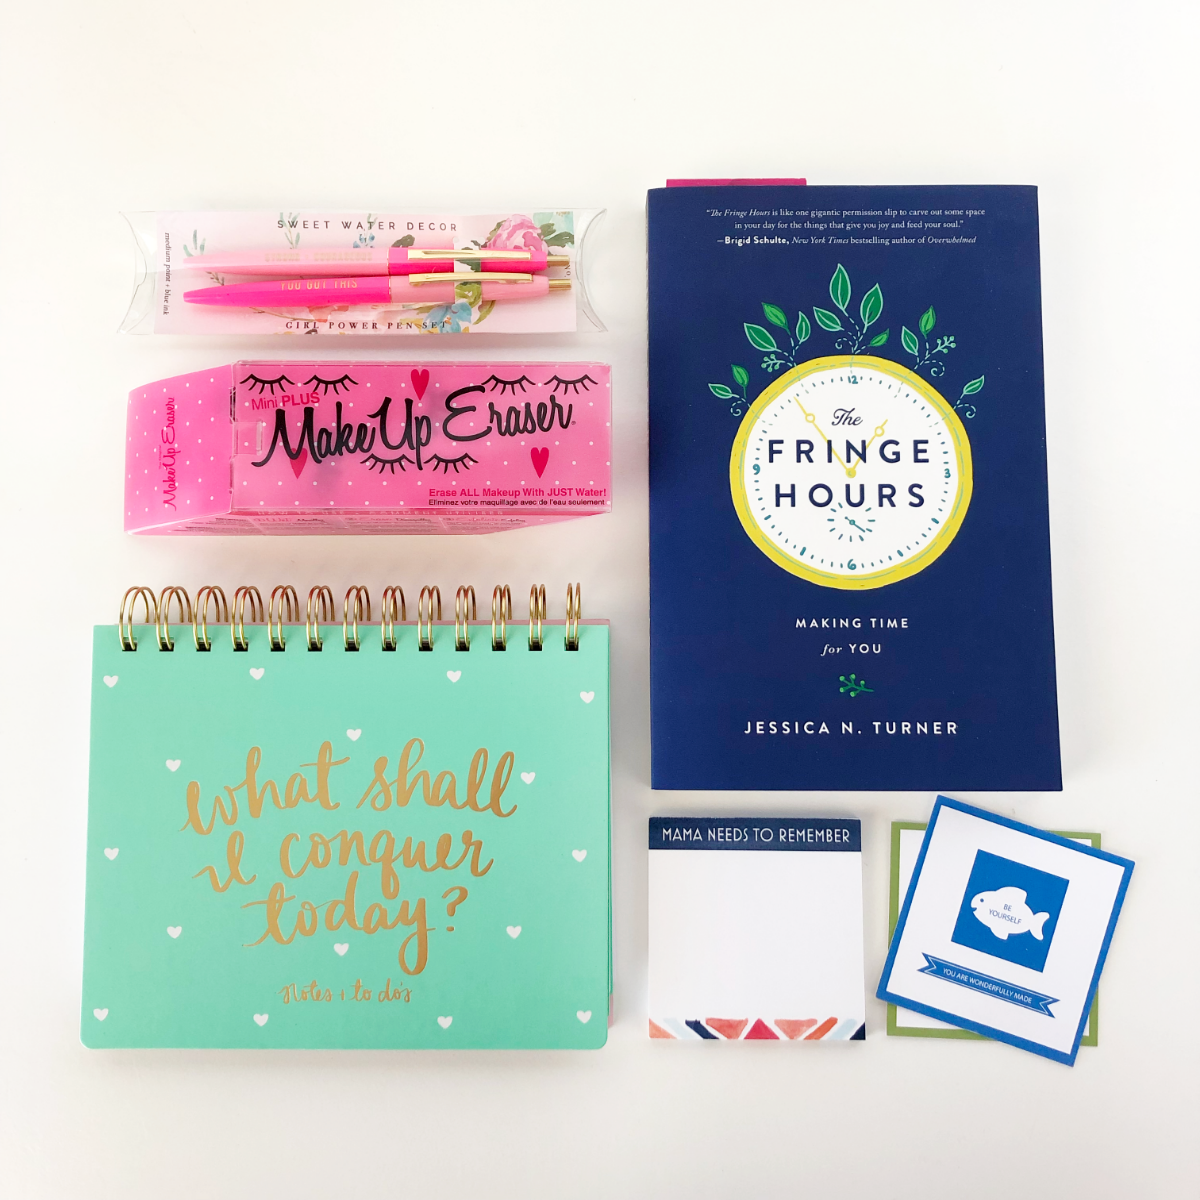 FOR - This subscription box just for mamas is the perfect gift for others, or just yourself. We are always hearing that we need to take care of ourselves in order to serve our families well - and here is a monthly opportunity to do just that!-Liz